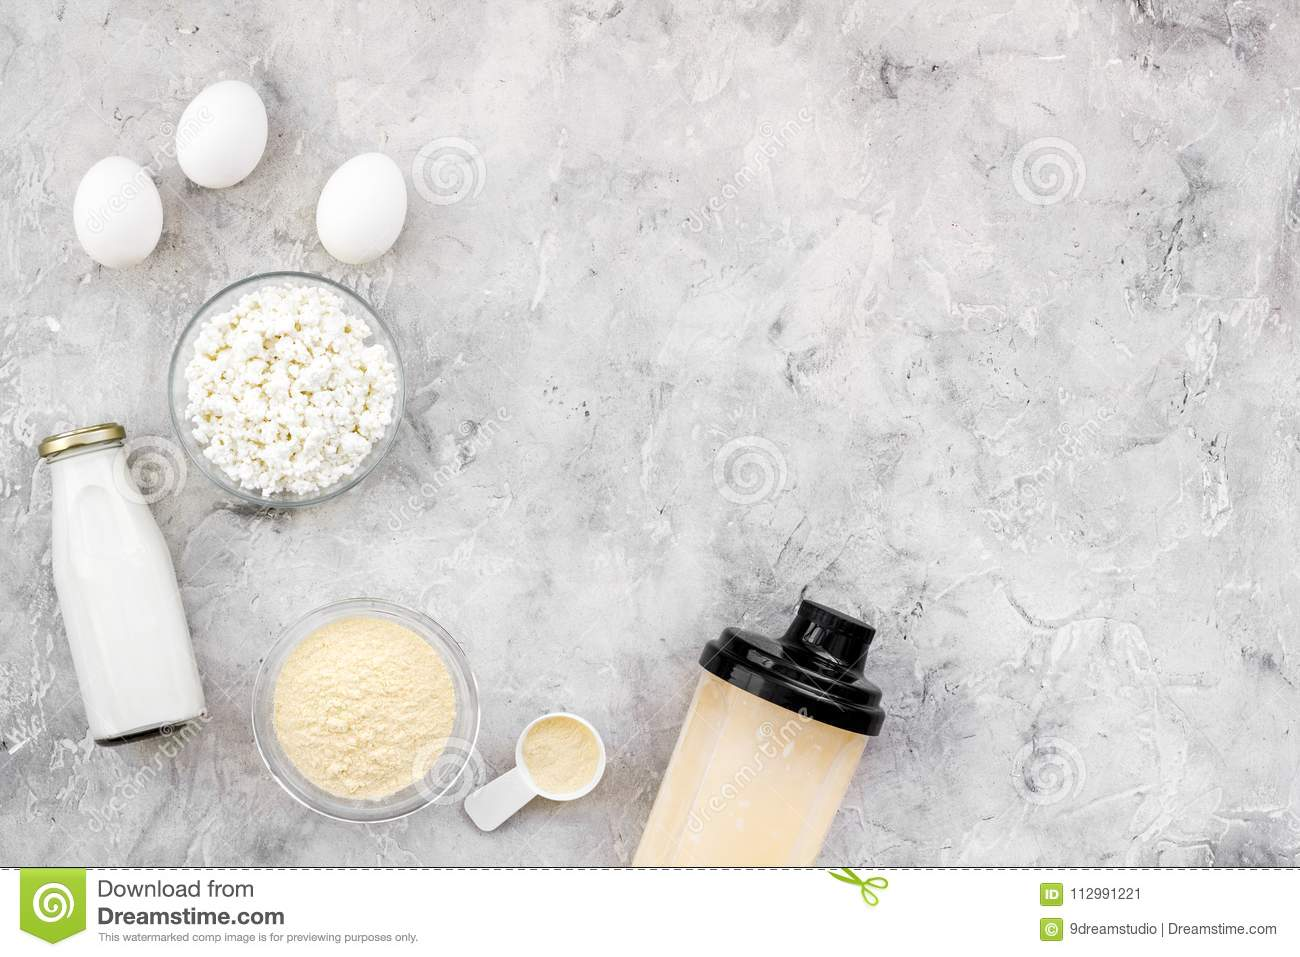 Nutrition for workout with protein cocktail, powder, eggs and milk on stone background top view mockup